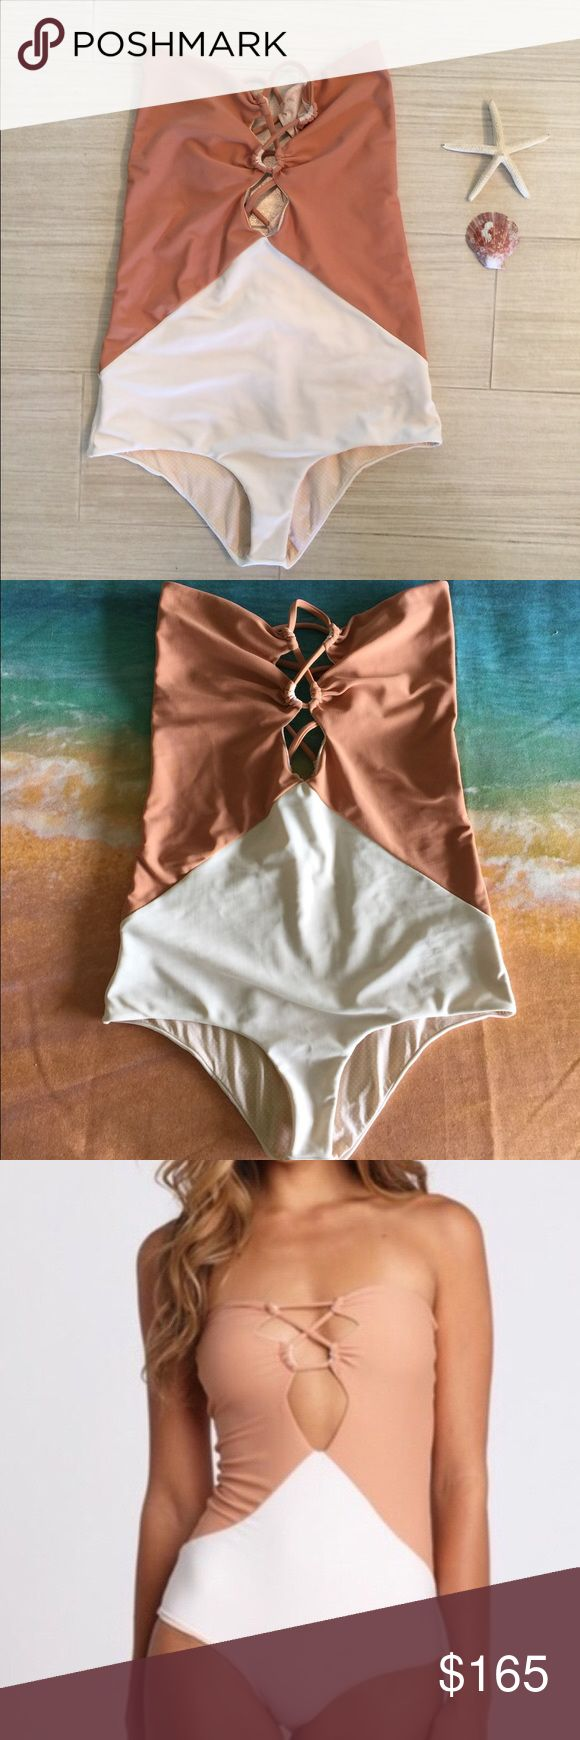 Acacia Bronx one piece white cream color Small Used only twice (tag removed)  no flaws!  Perfect condition!  Hand washed. acacia swimwear Swim One Pieces